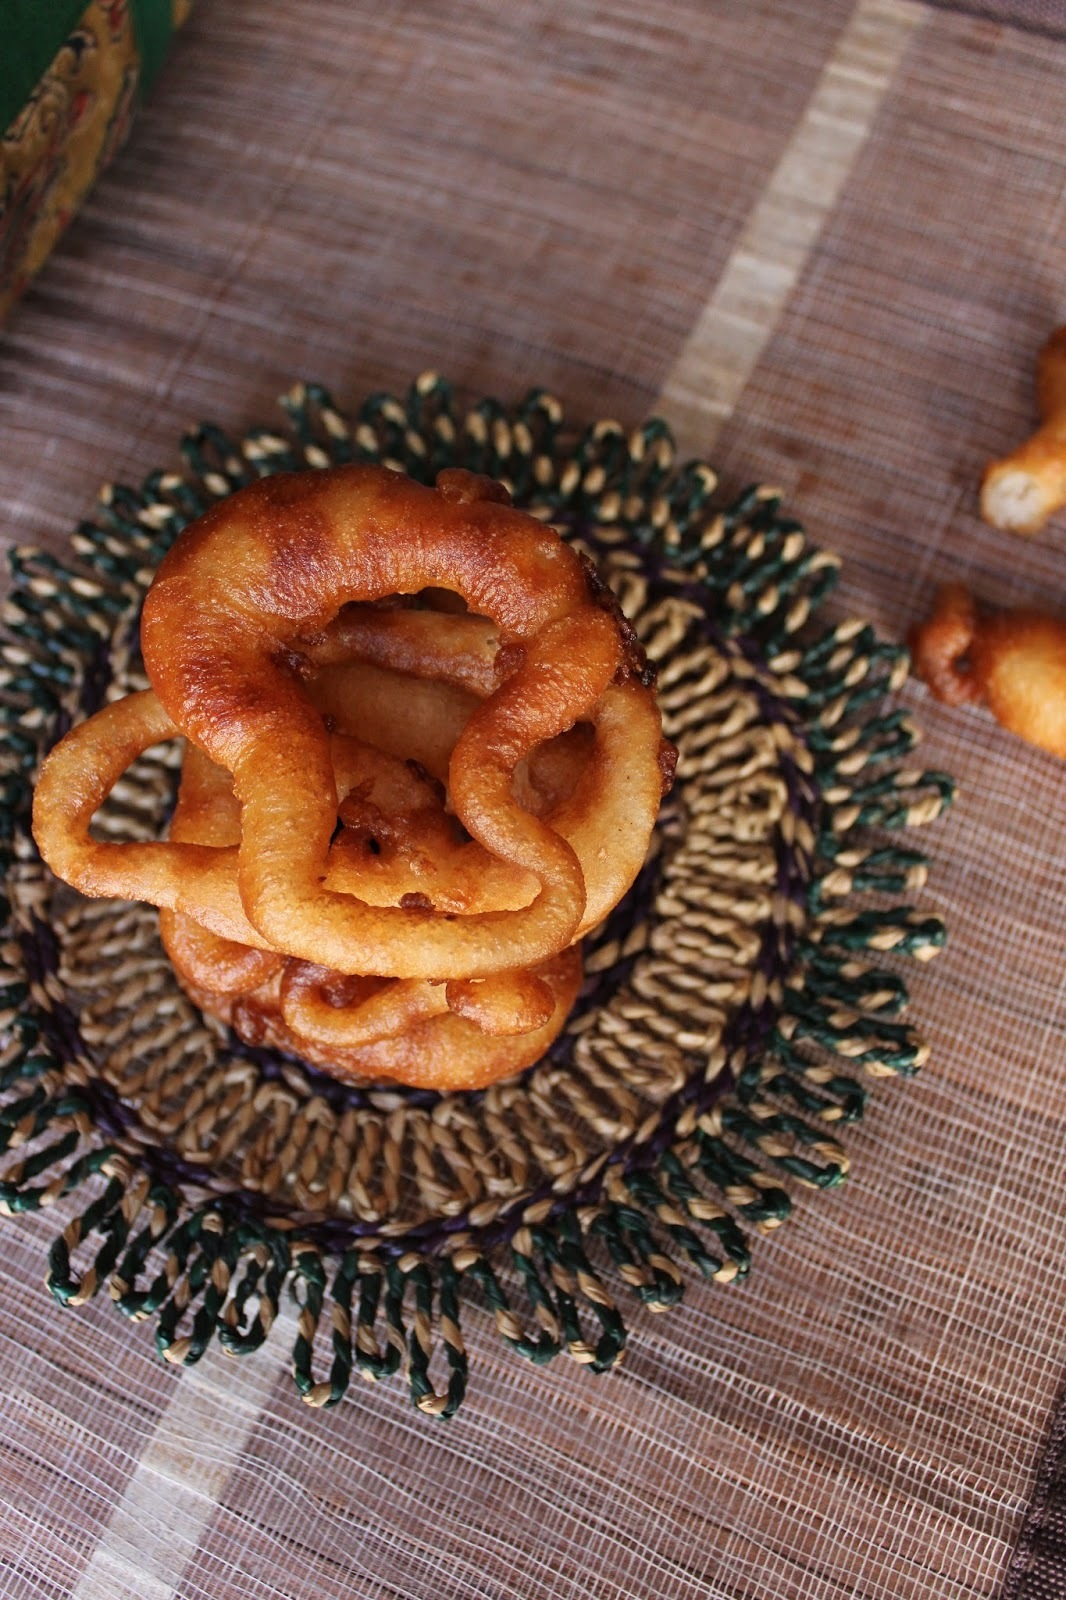 Sikkim's Selroti – Deep fried sweet rings